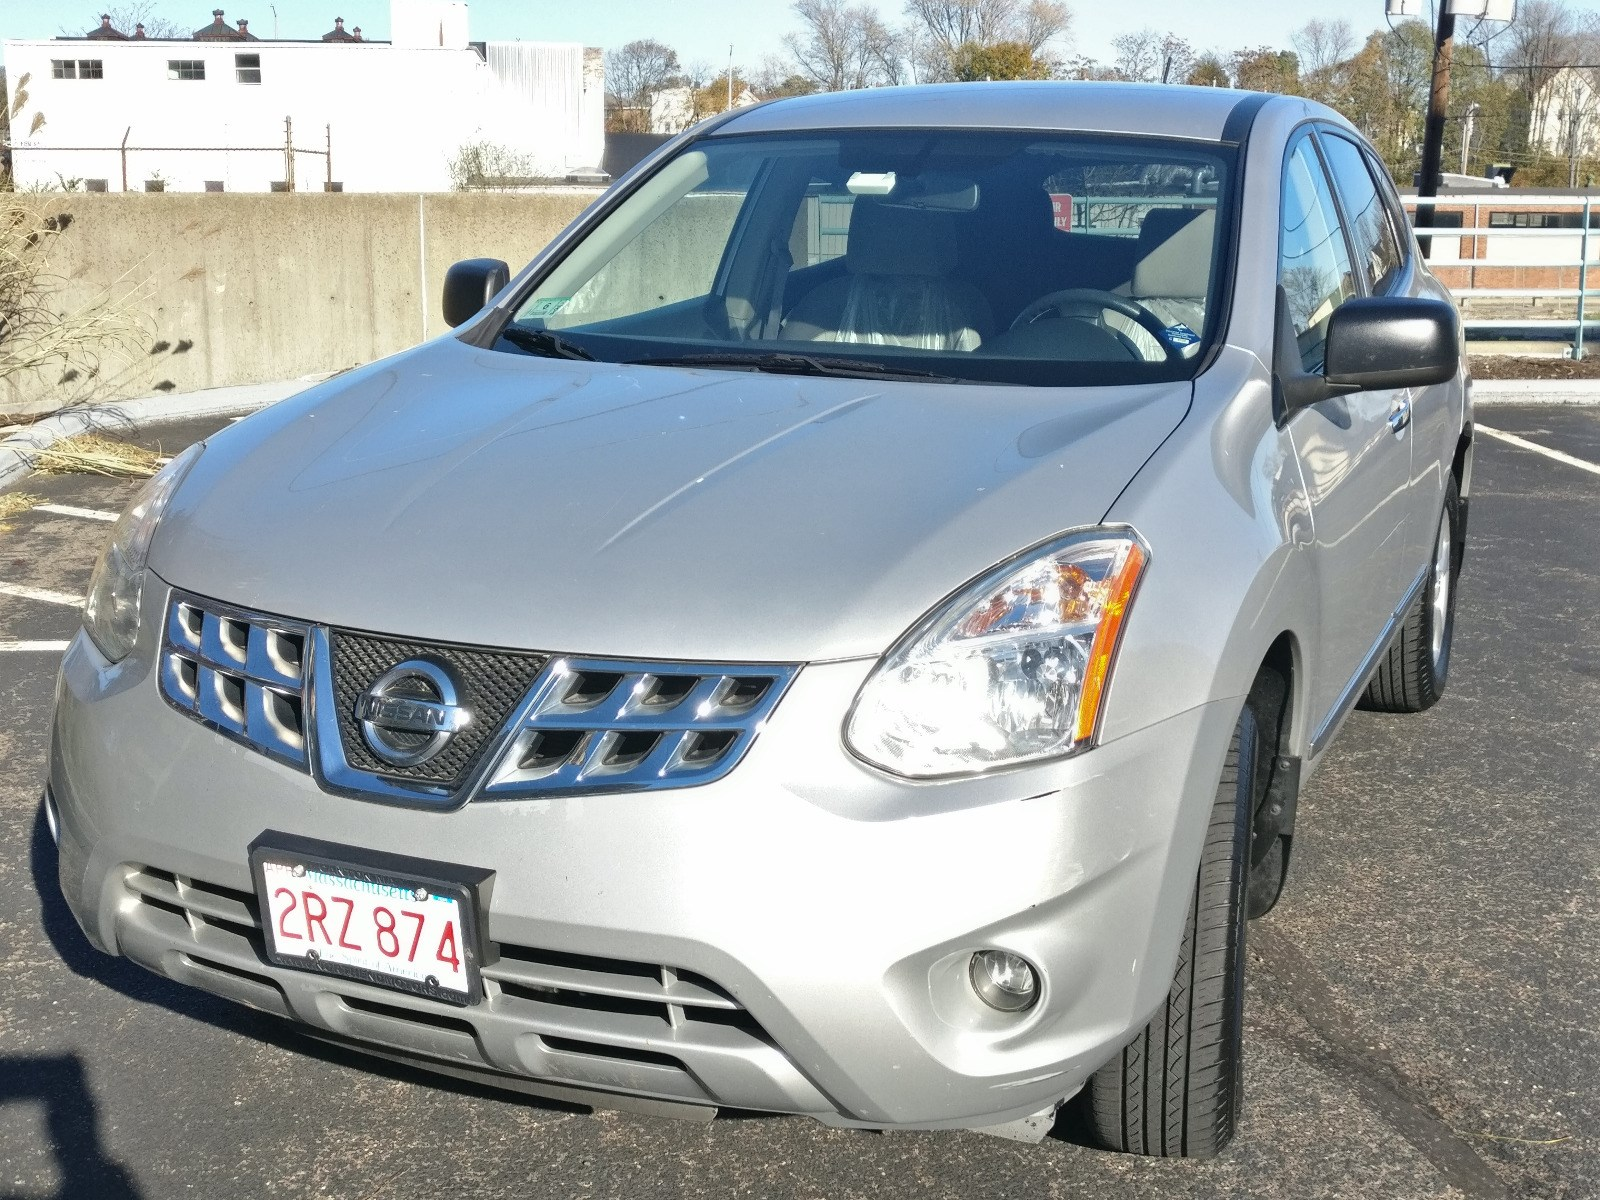 loads year changed contender has with while sv in special to competent awd remains offers edition rogue market mixed interior lineup of the it adds nissan cuv not space comfortable this a